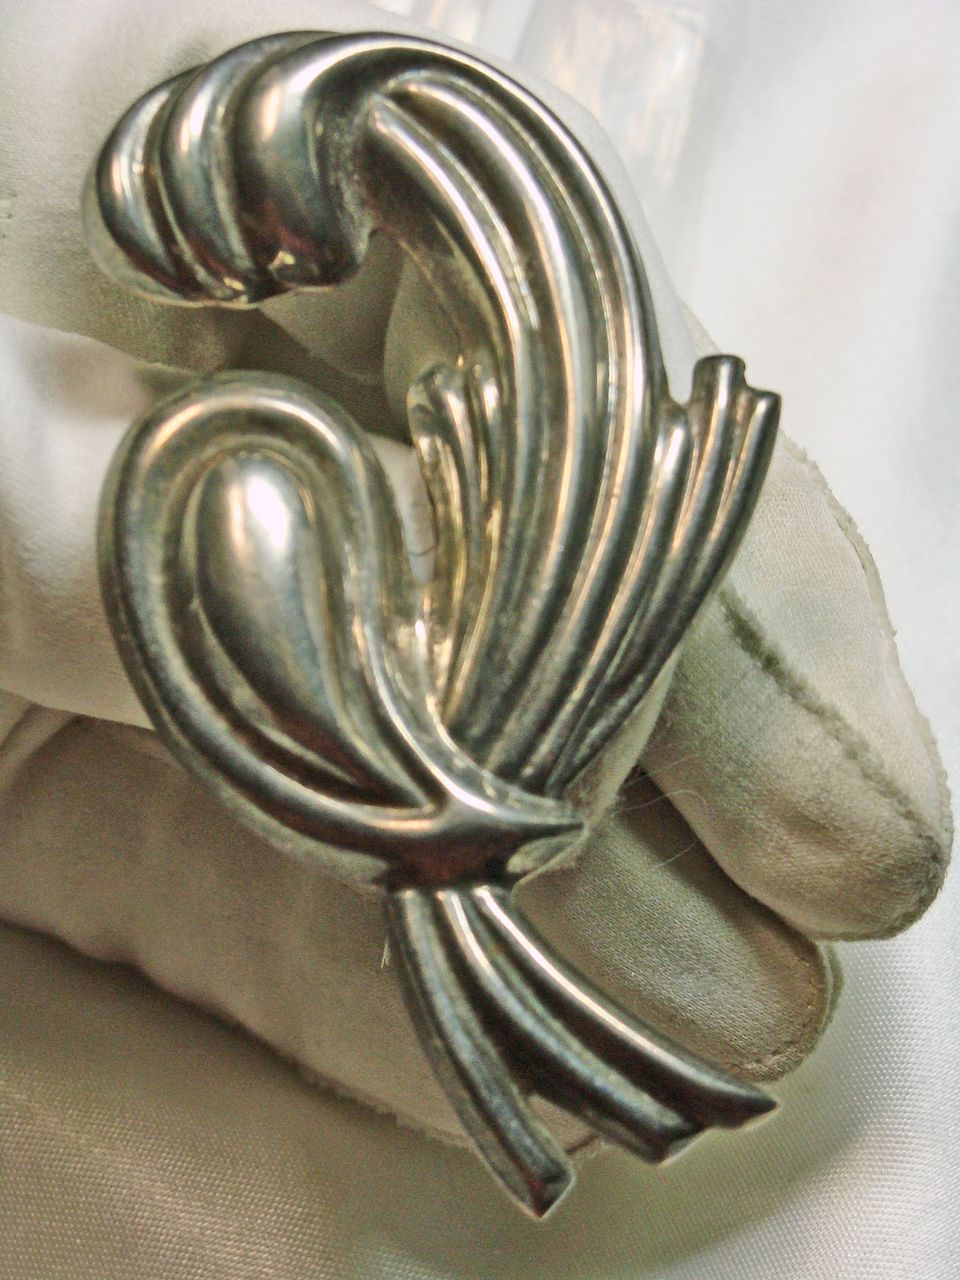 Striking Sterling Silver  Mexican Broach/Pendant with a Ribbon Motif